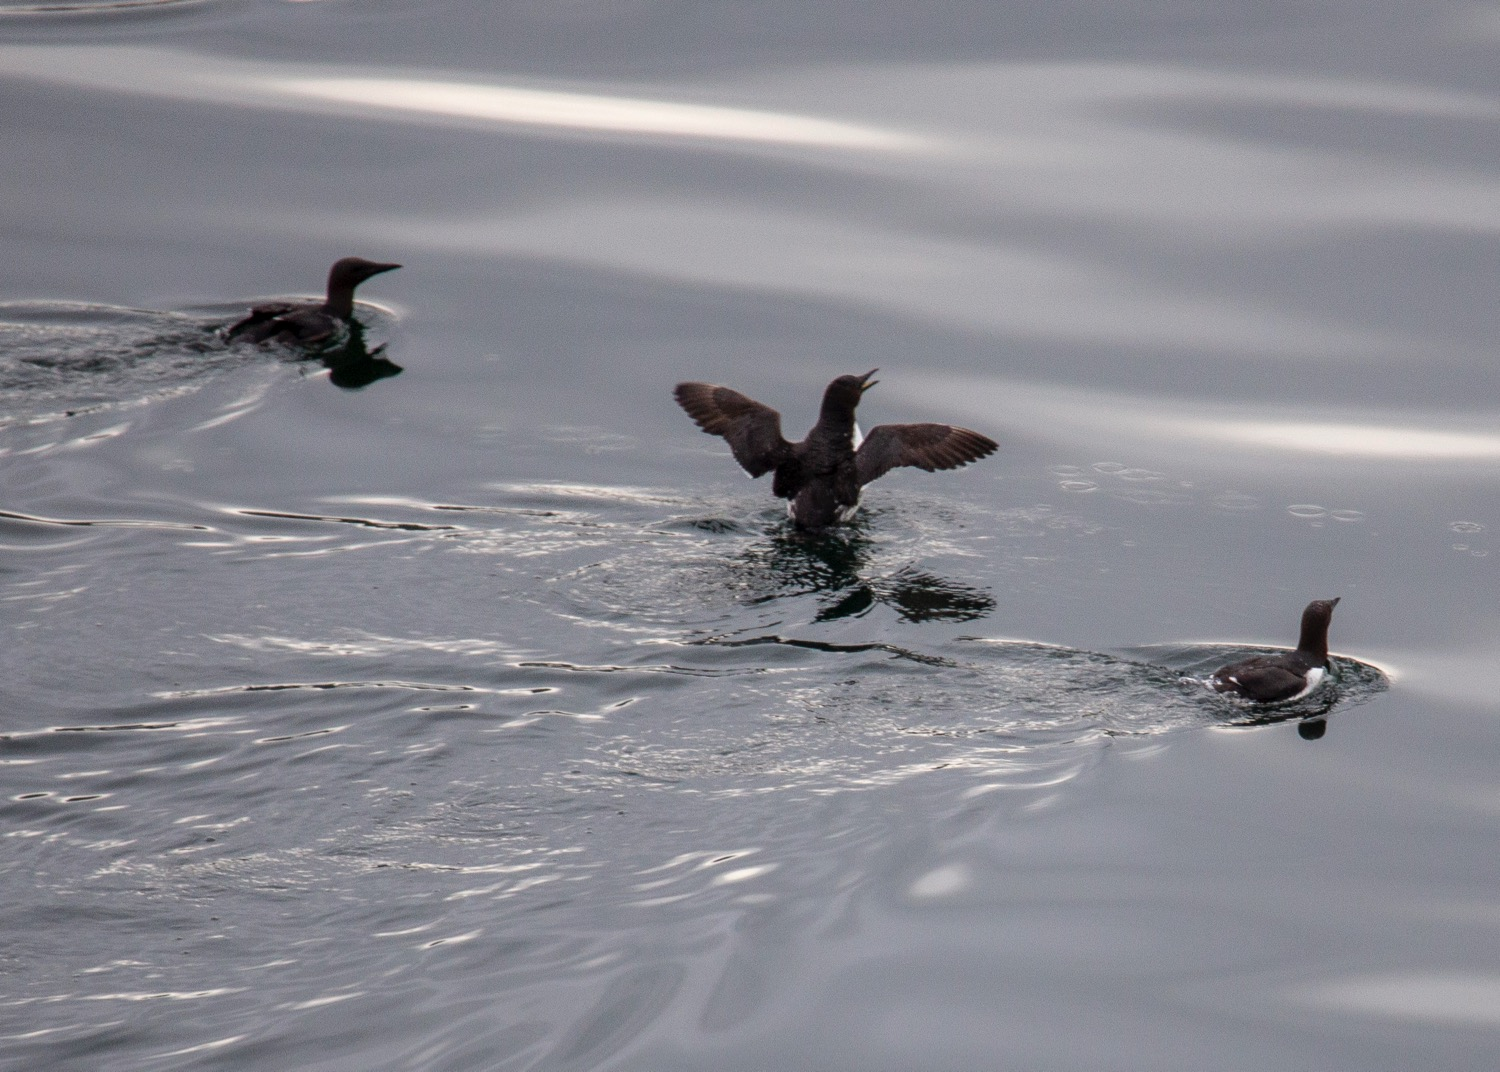 Common murres on the water